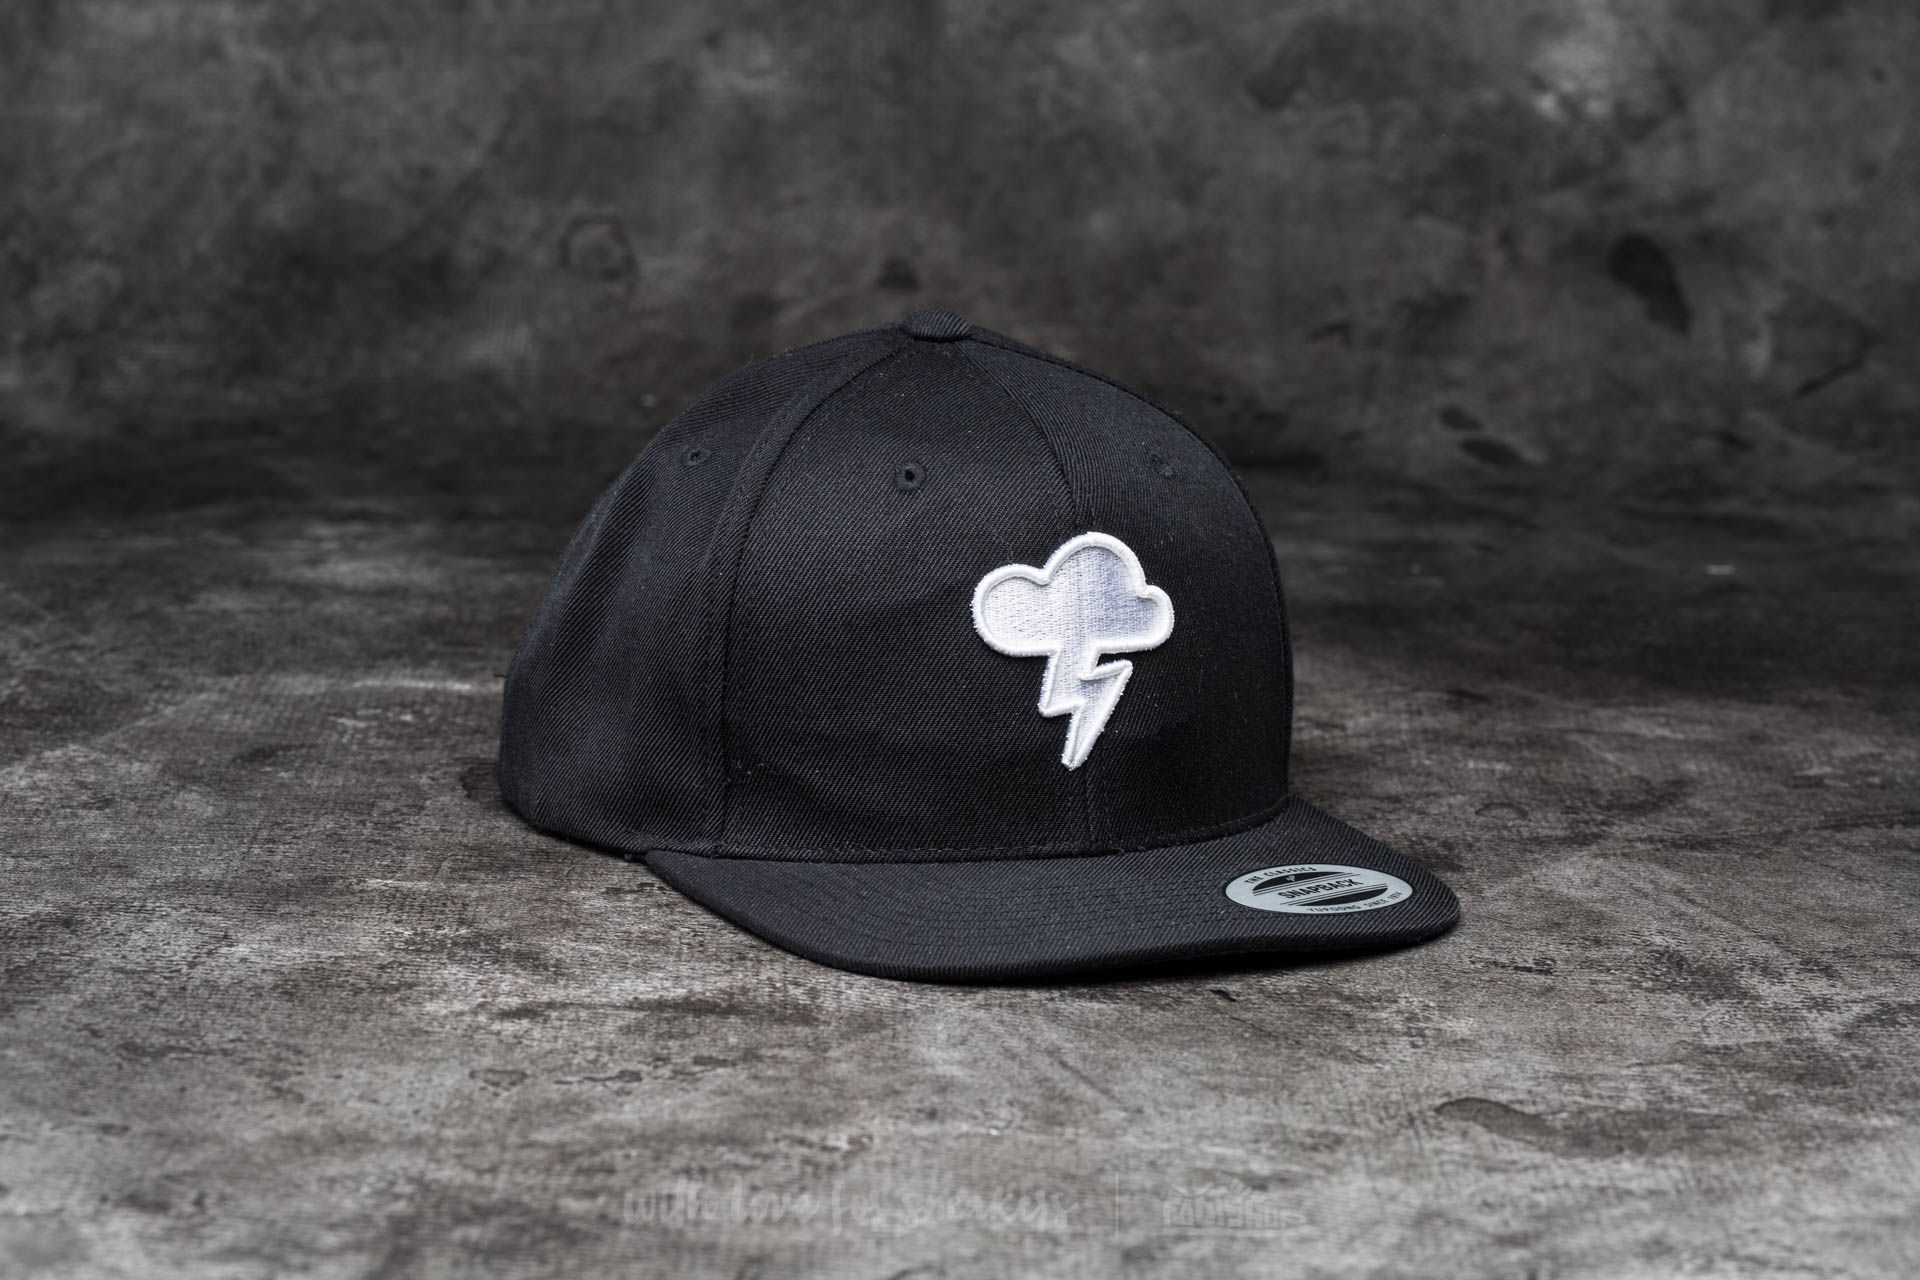 BIGG BOSS Cloud Snapback Black - 13579